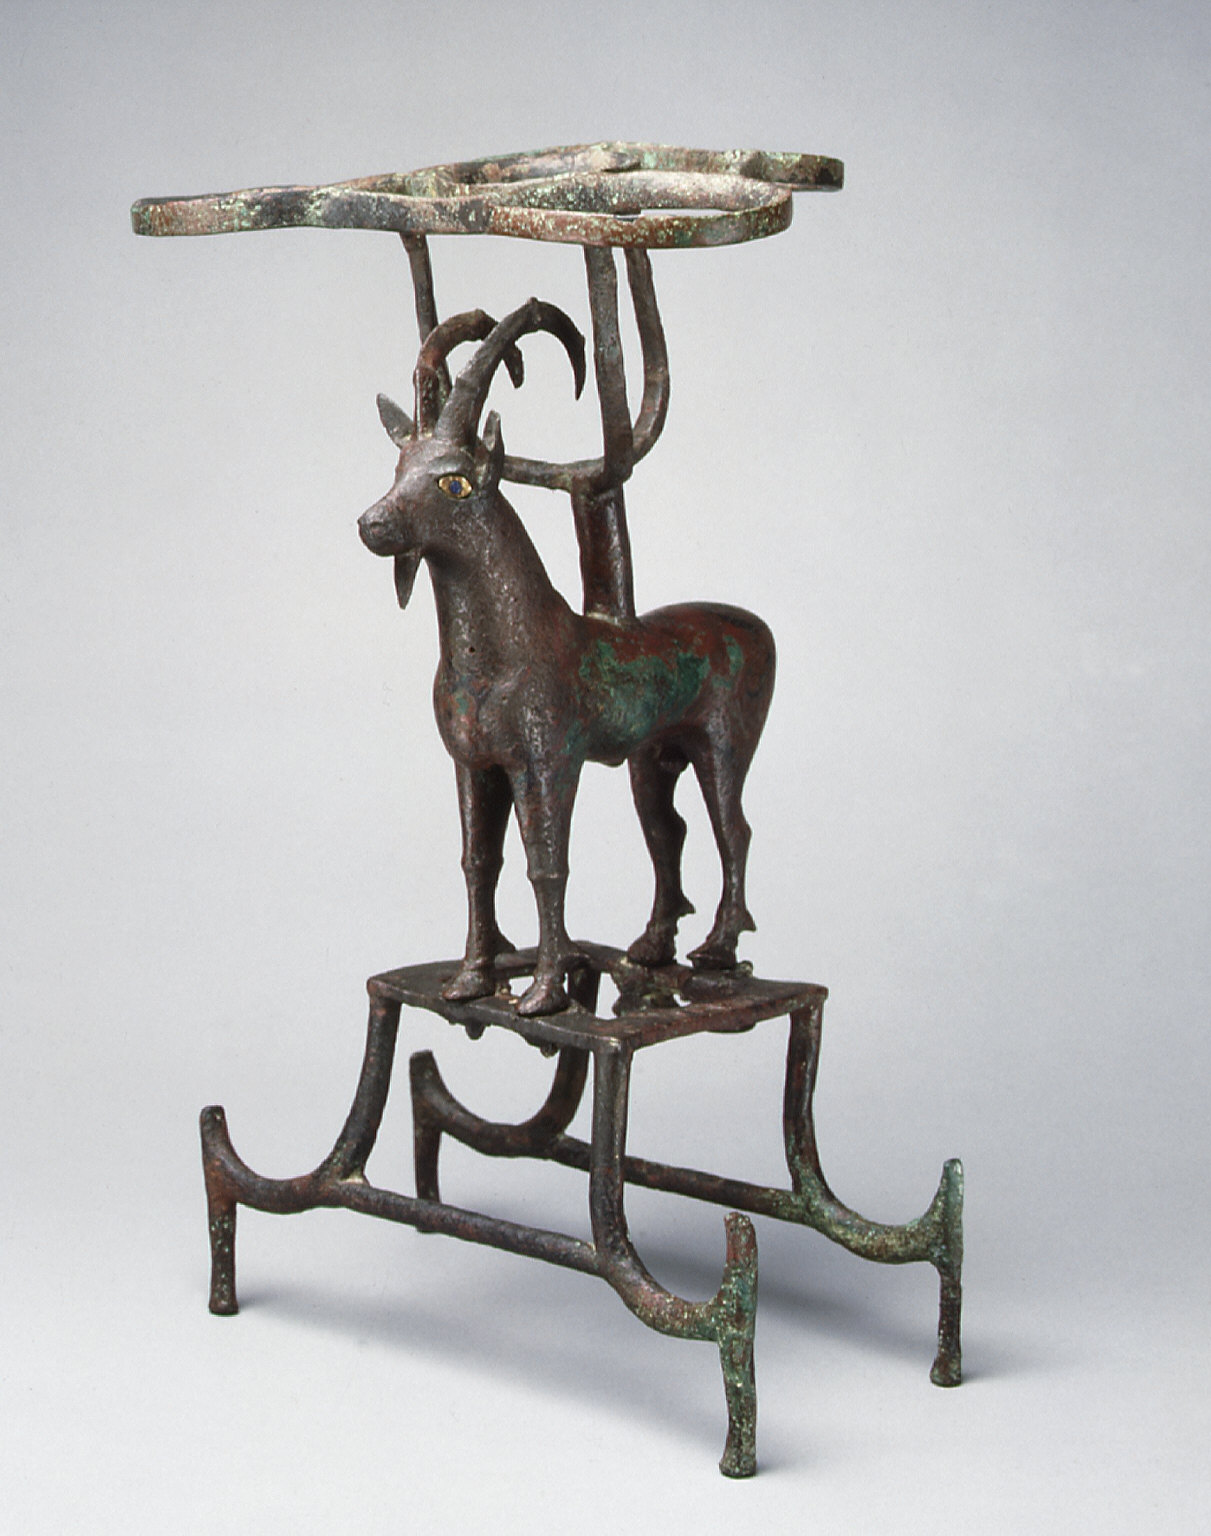 Vessel stand with ibex support